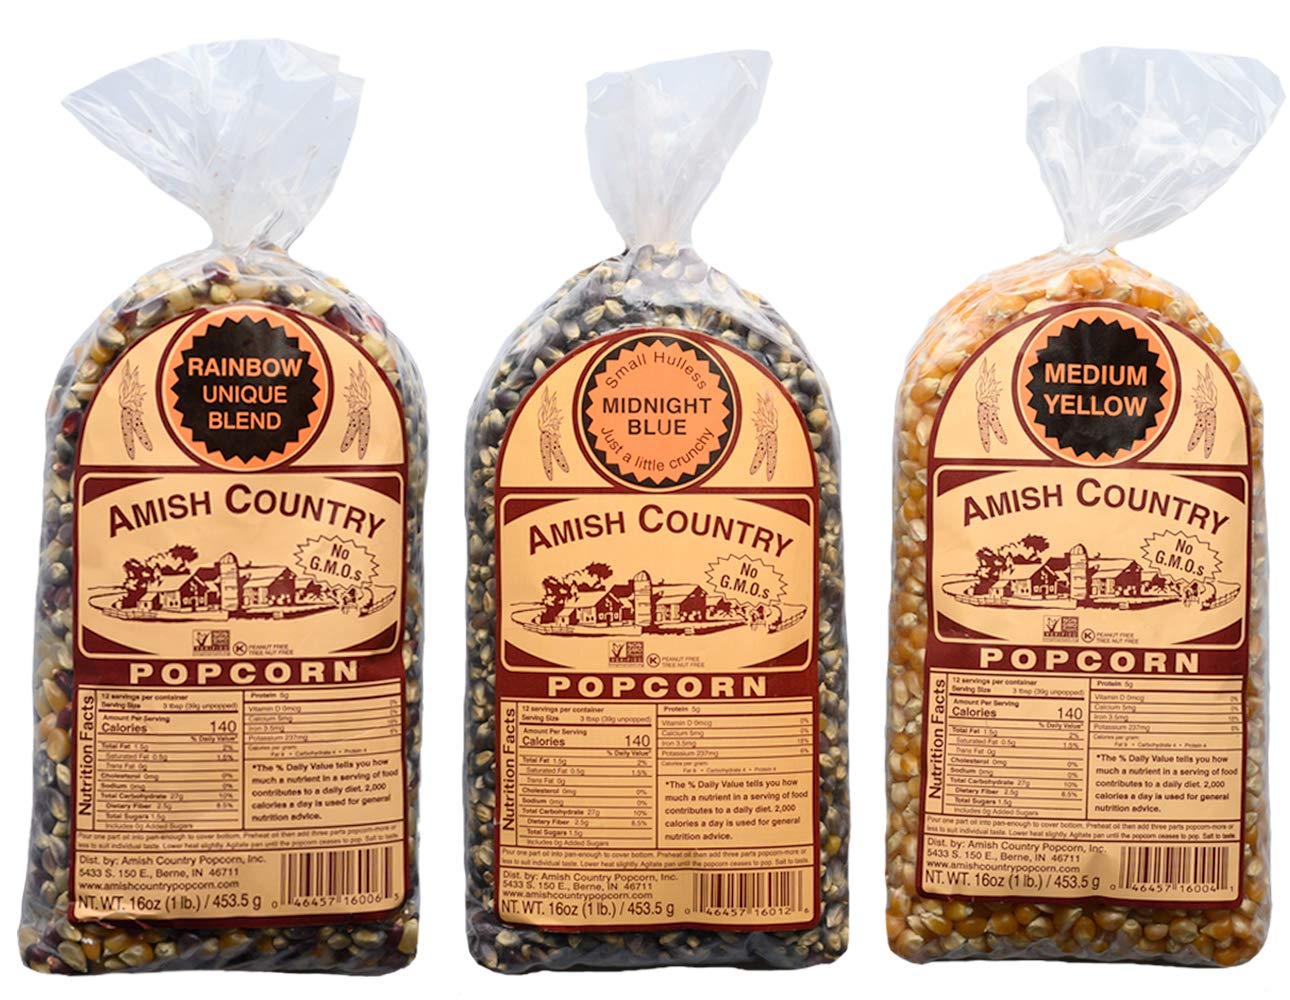 Amish Country Popcorn - 3 (1 lb. Bag Gift Set) Midnight Blue, Rainbow, and Medium Yellow Popcorn - Old Fashioned, Non GMO, and Gluten Free - Recipe Guide by Amish Country Popcorn